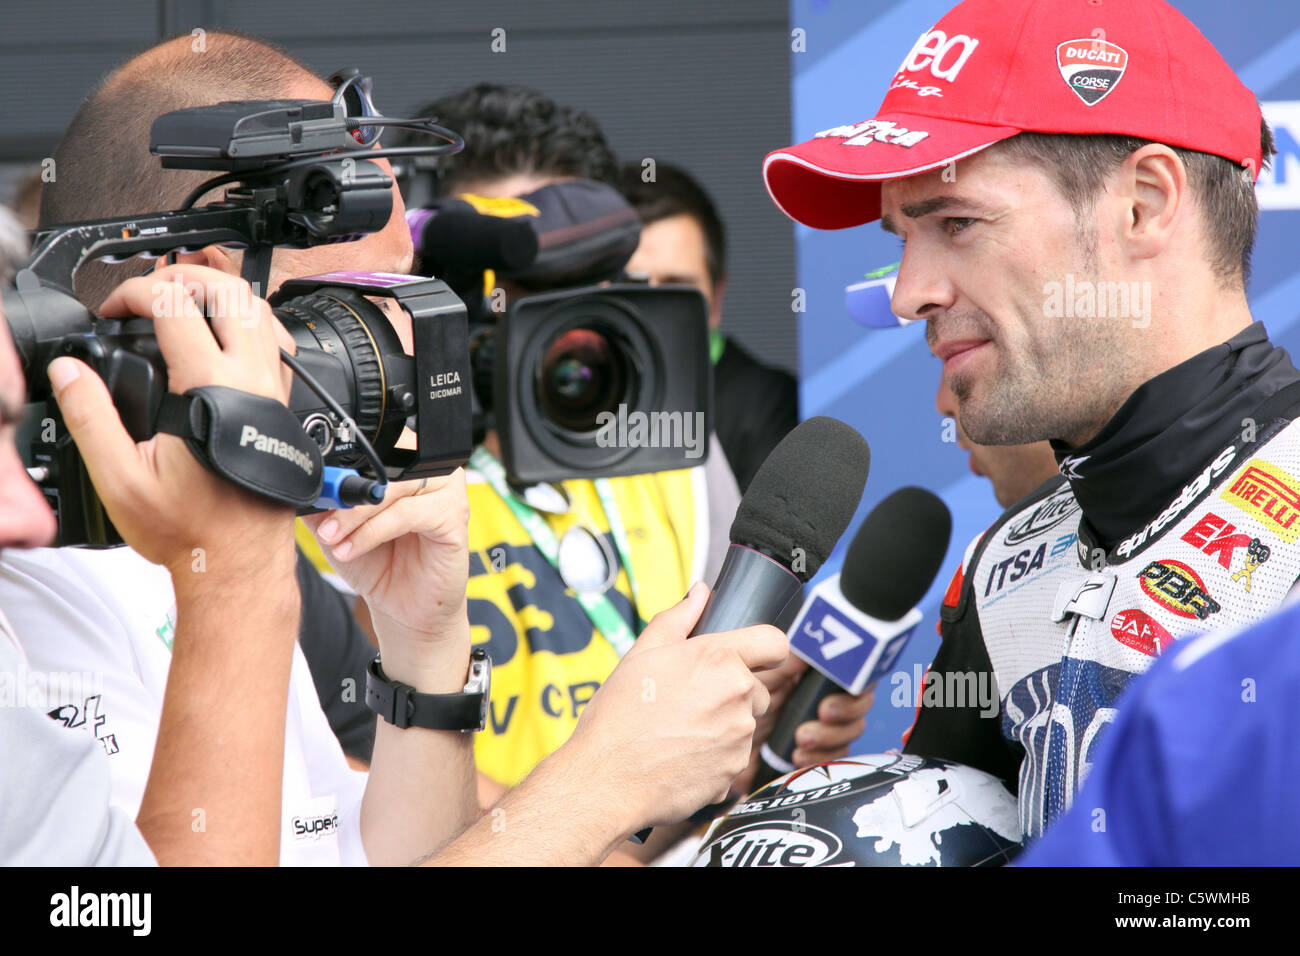 Interviewing winner Carlos Checa after the second race at Silverstone Stock Photo